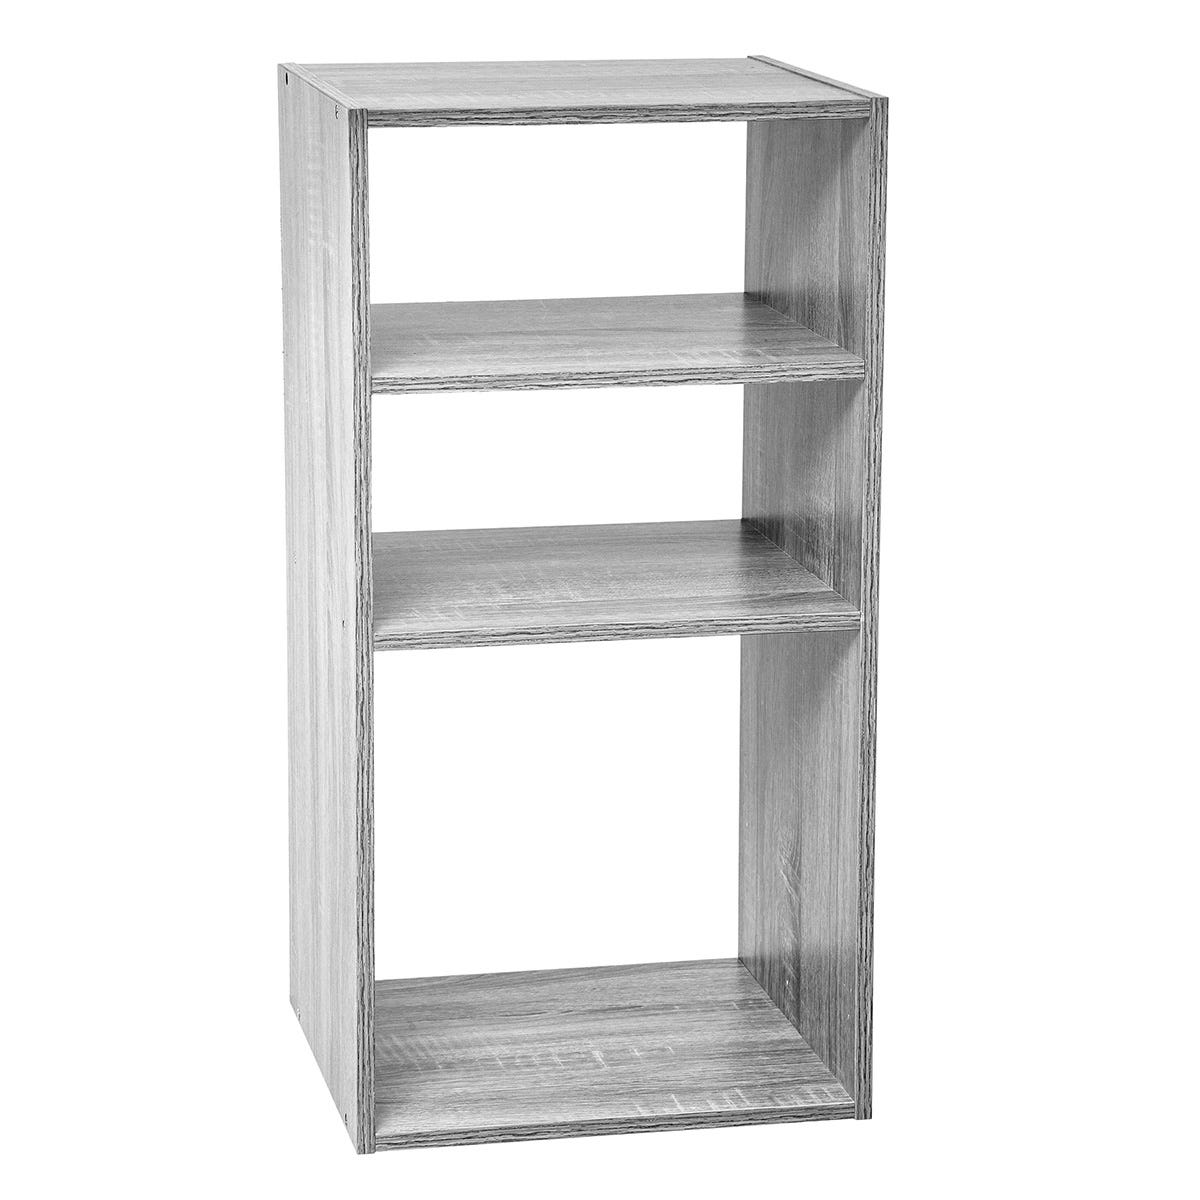 5Five 2 Small and 1 Large Compartment Shelving Unit - Grey